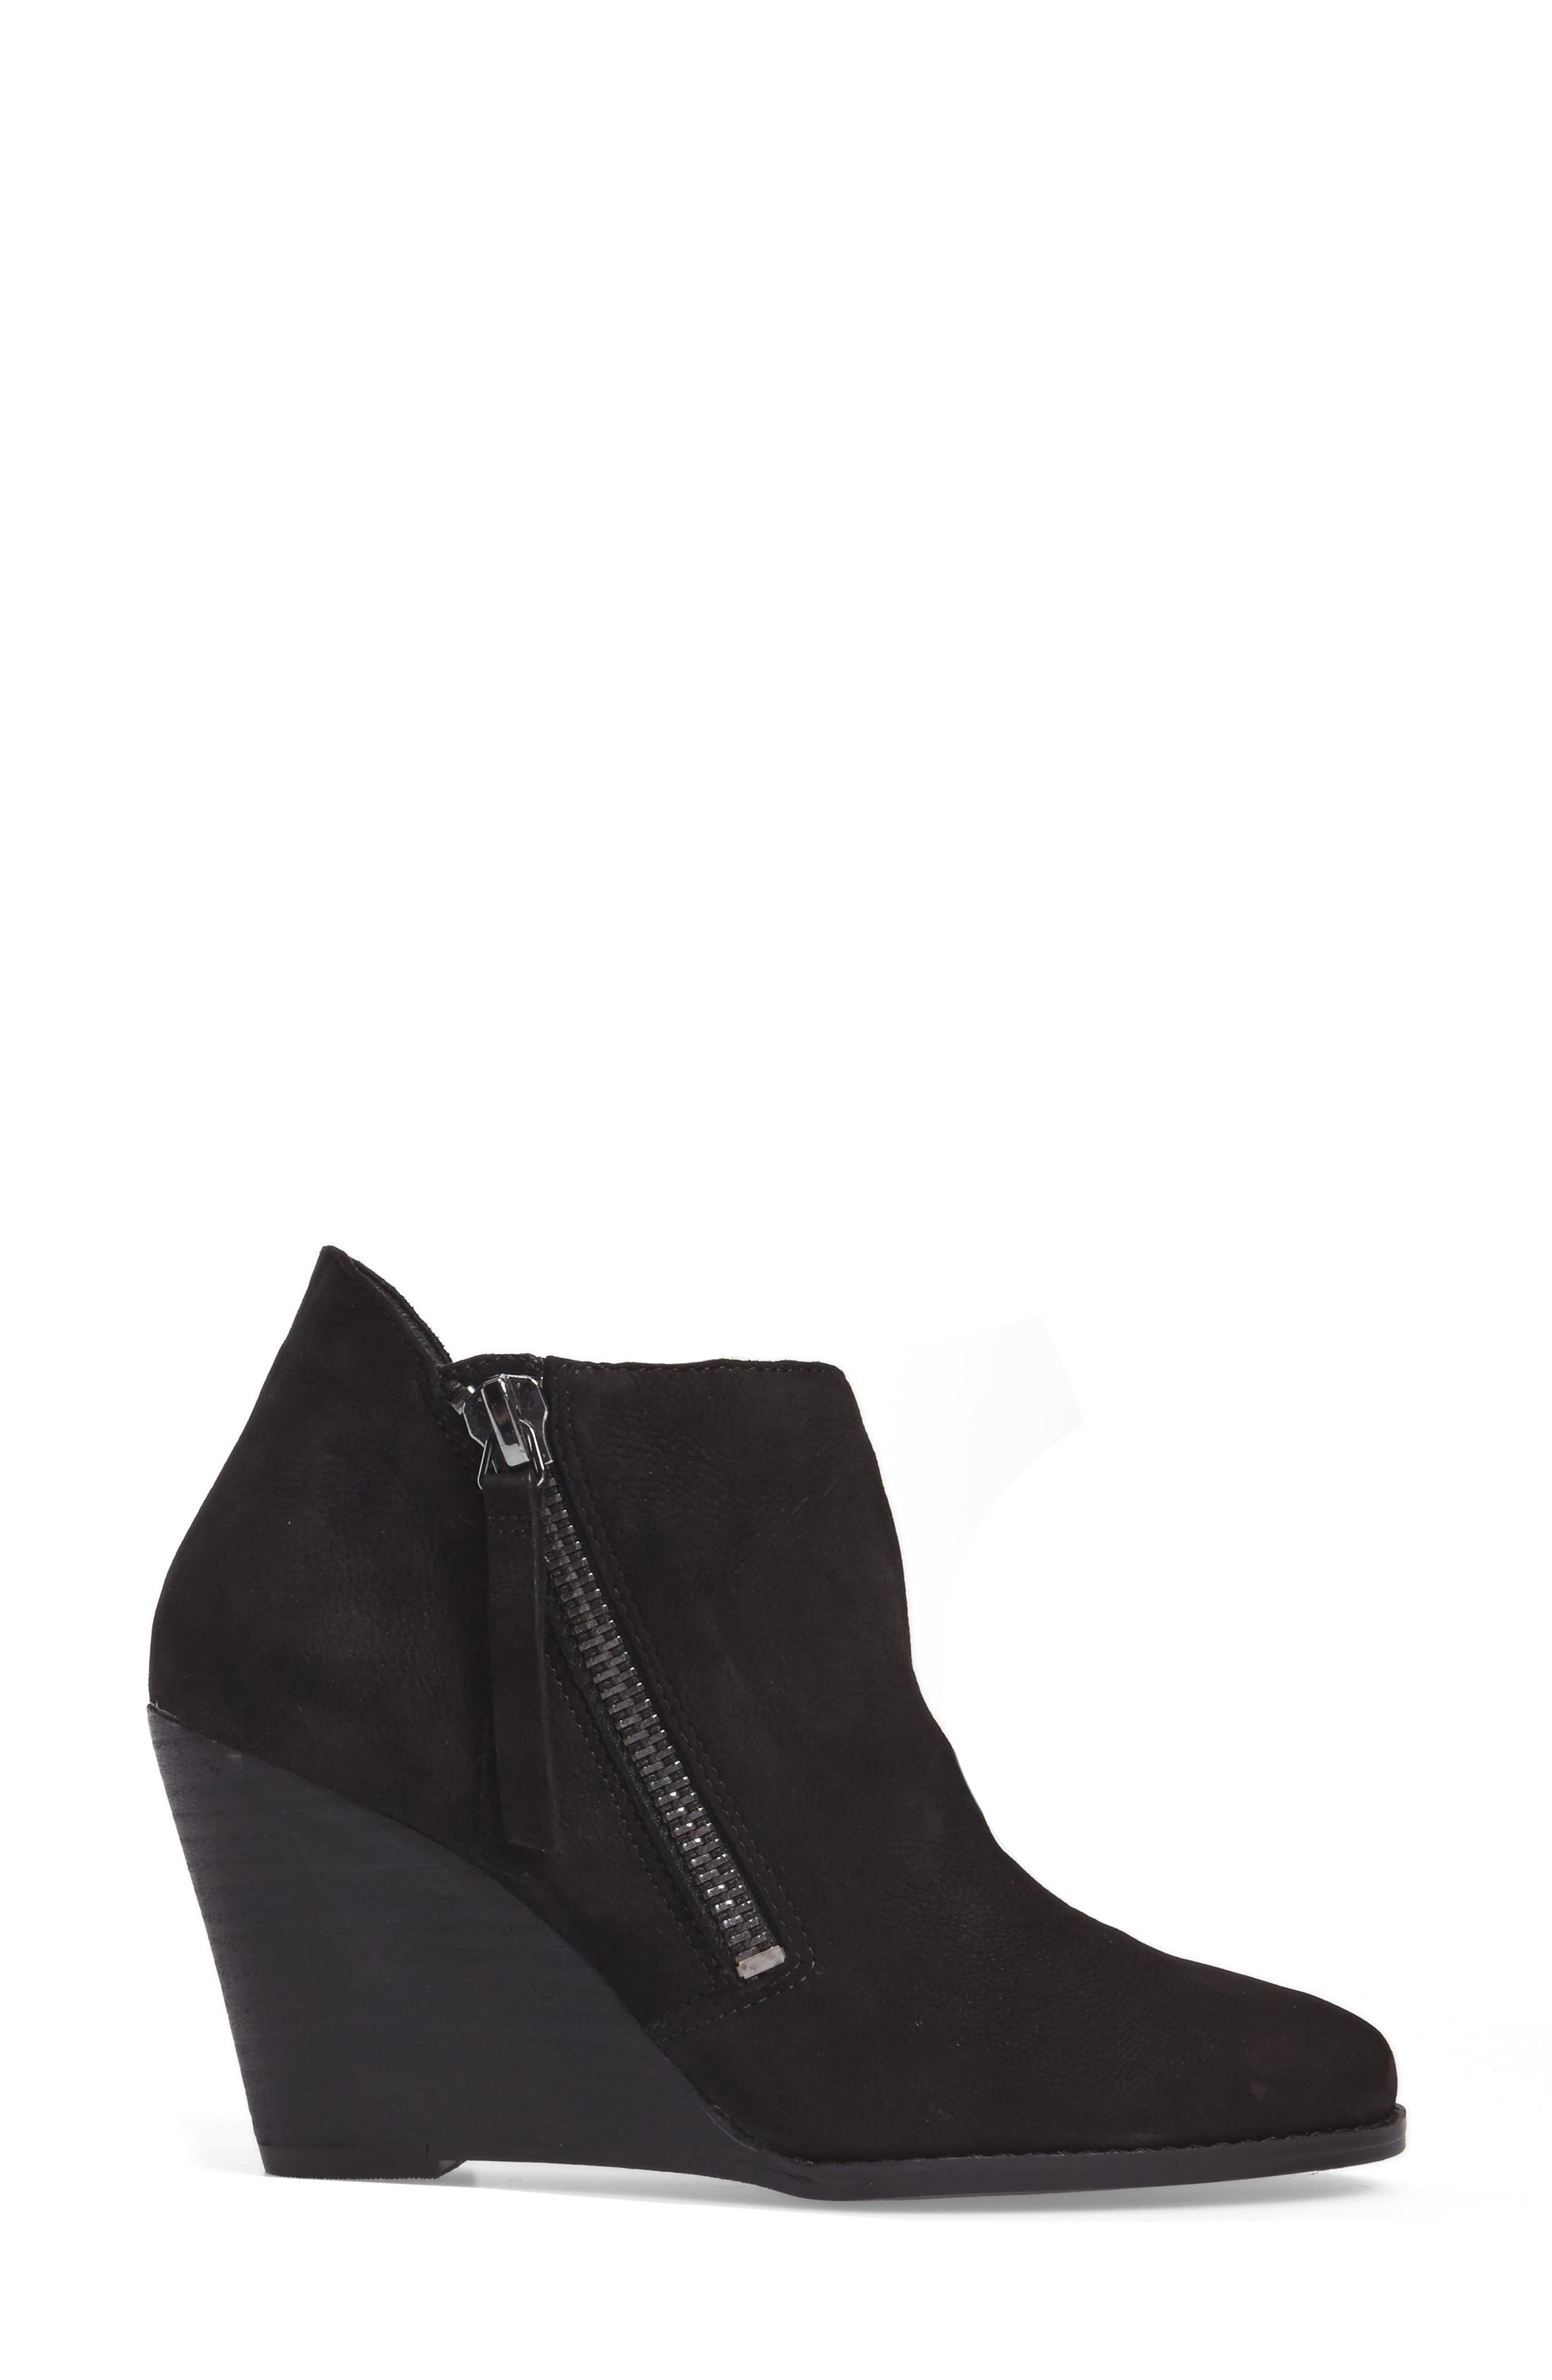 Carnivela Wedge Bootie,                             Alternate thumbnail 3, color,                             001